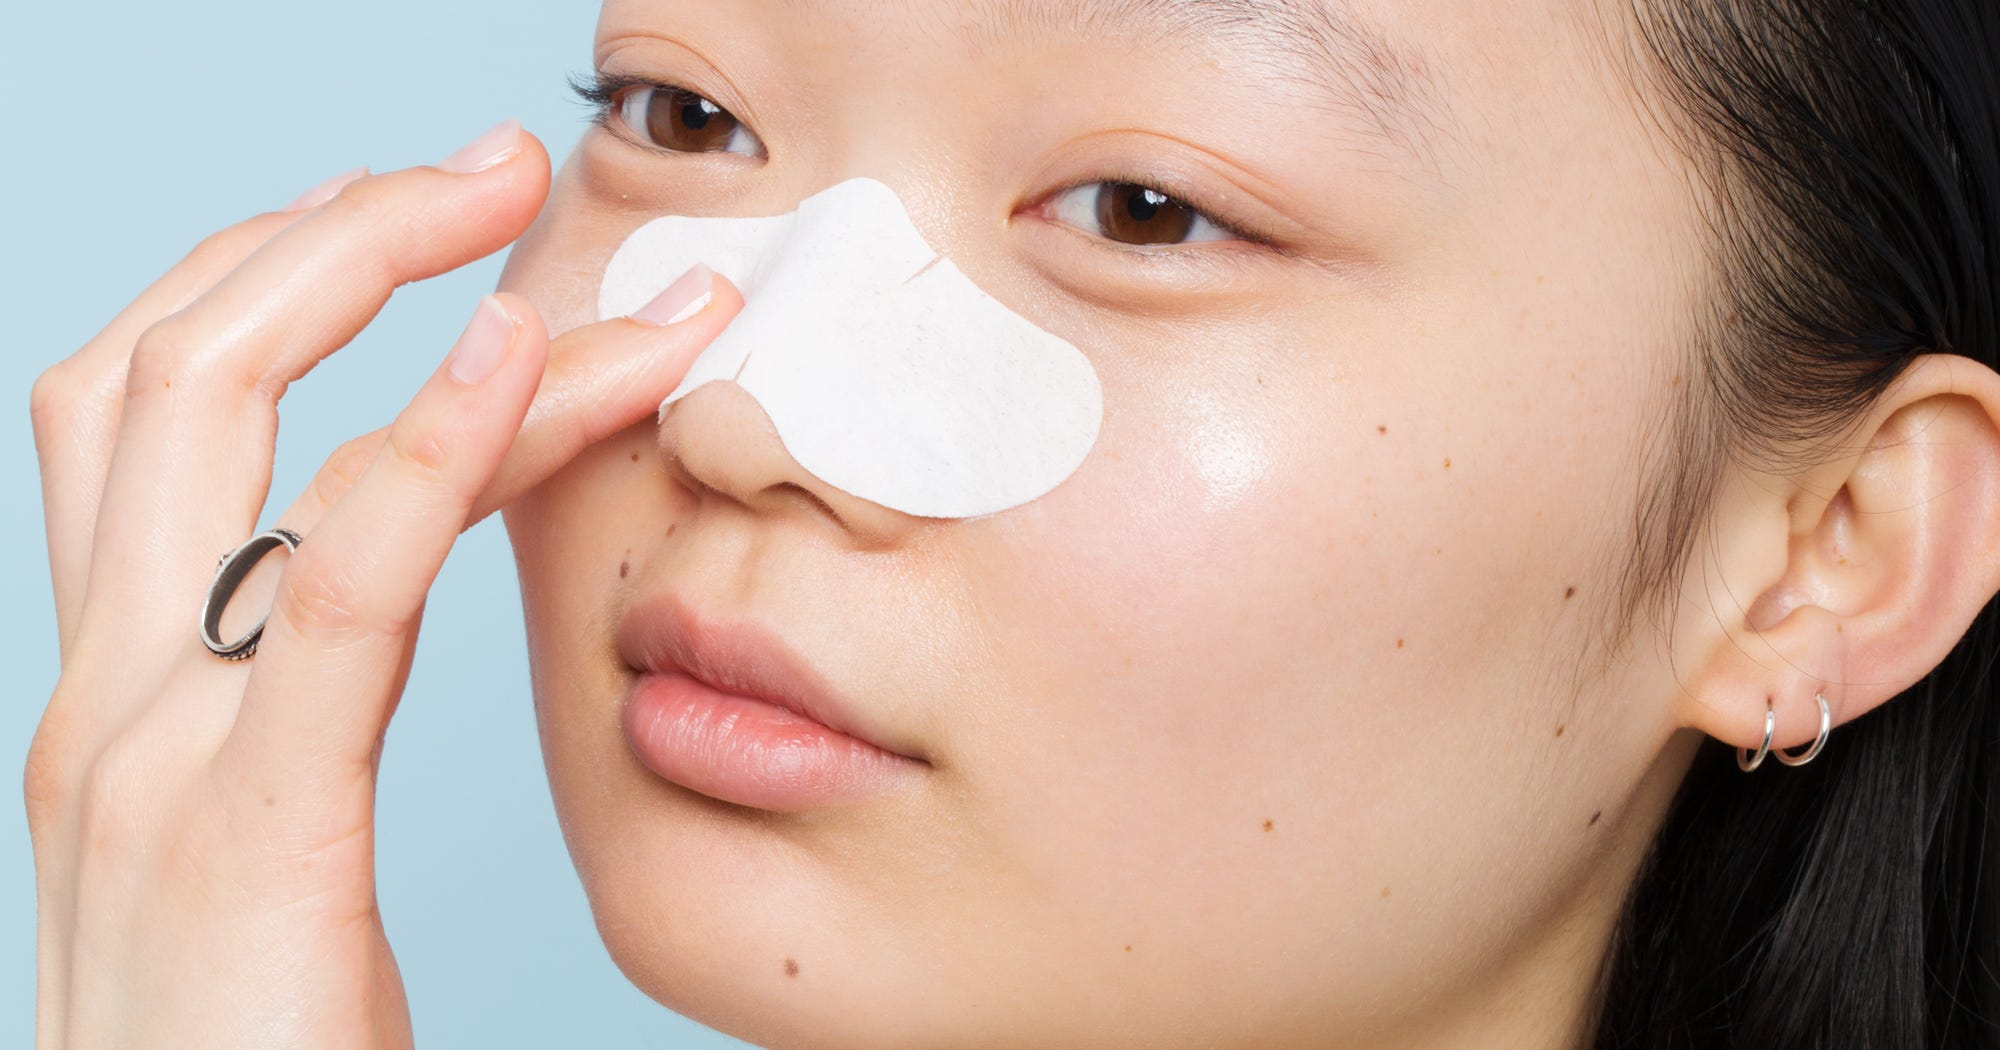 Pore Strips Pros Cons - How To Remove Blackheads